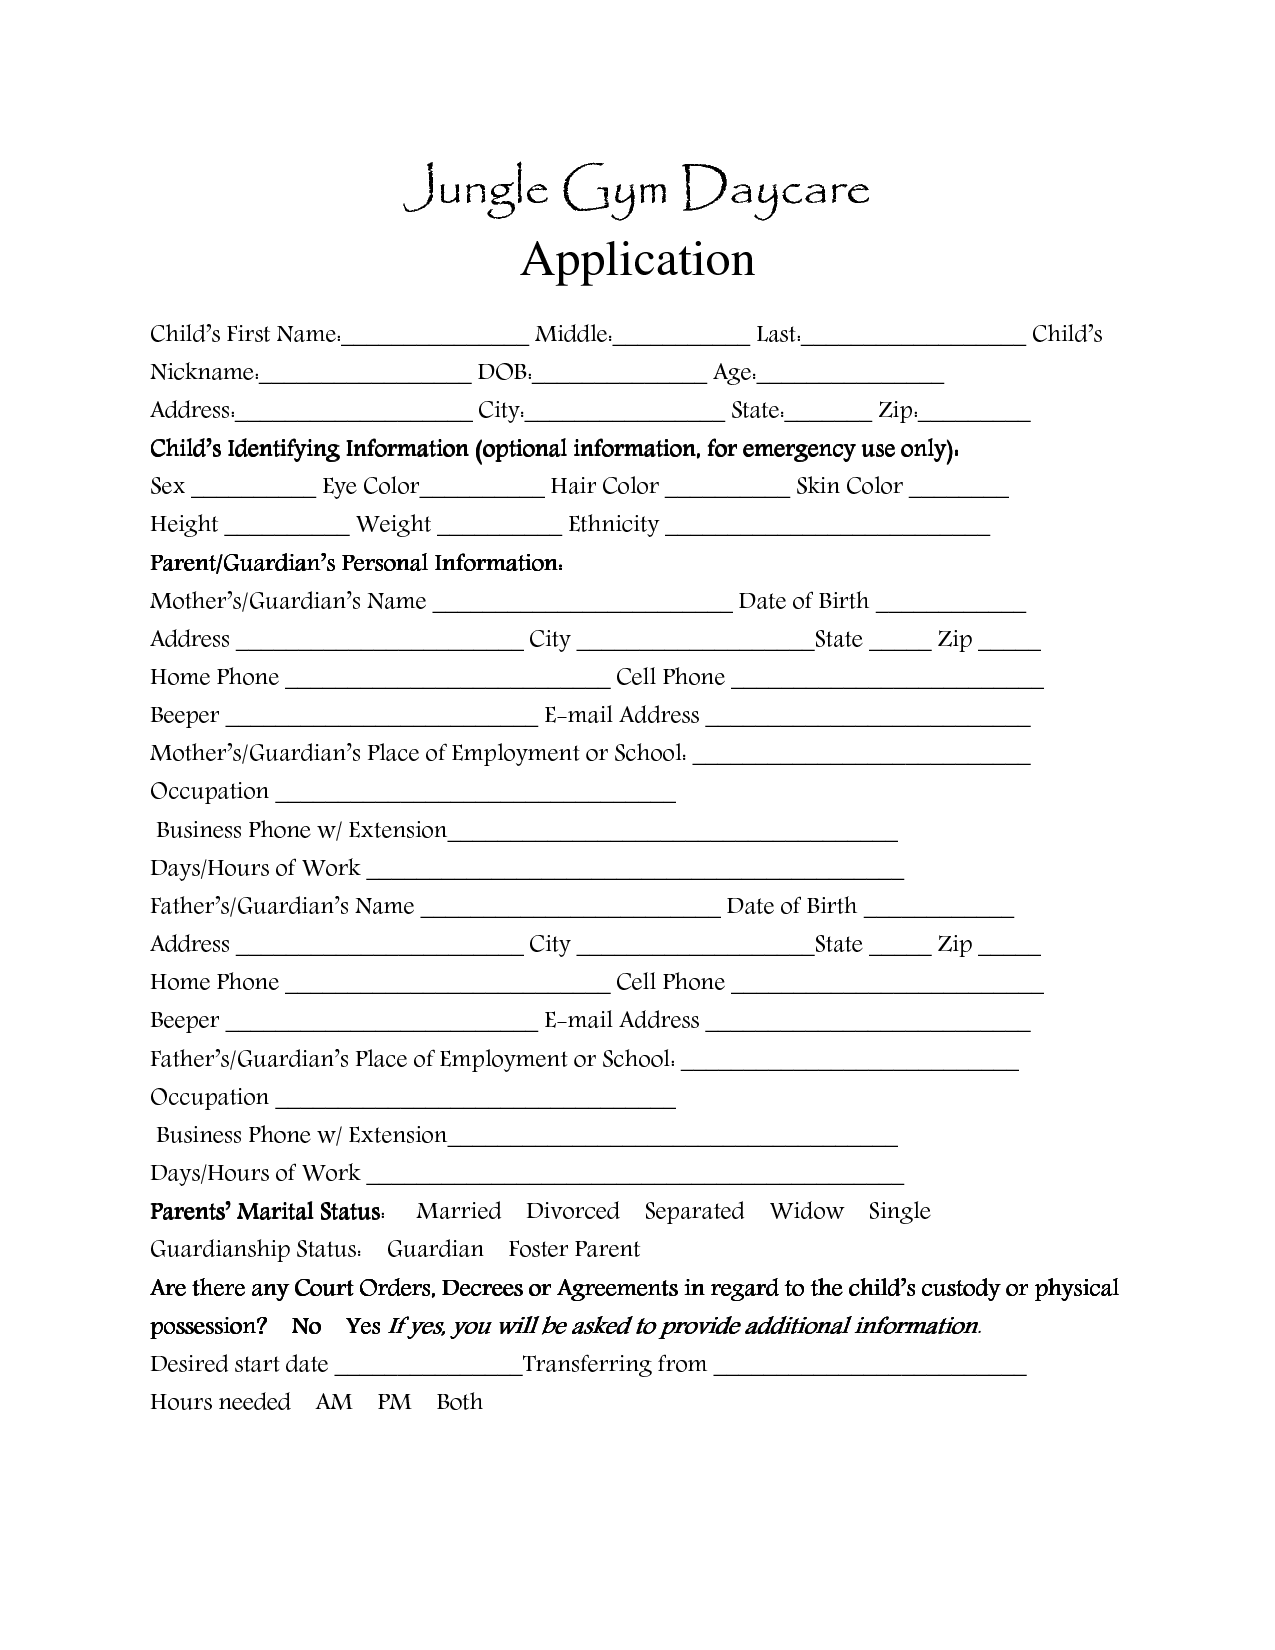 Day Care Application Forms Template | Daycare | Pinterest ...